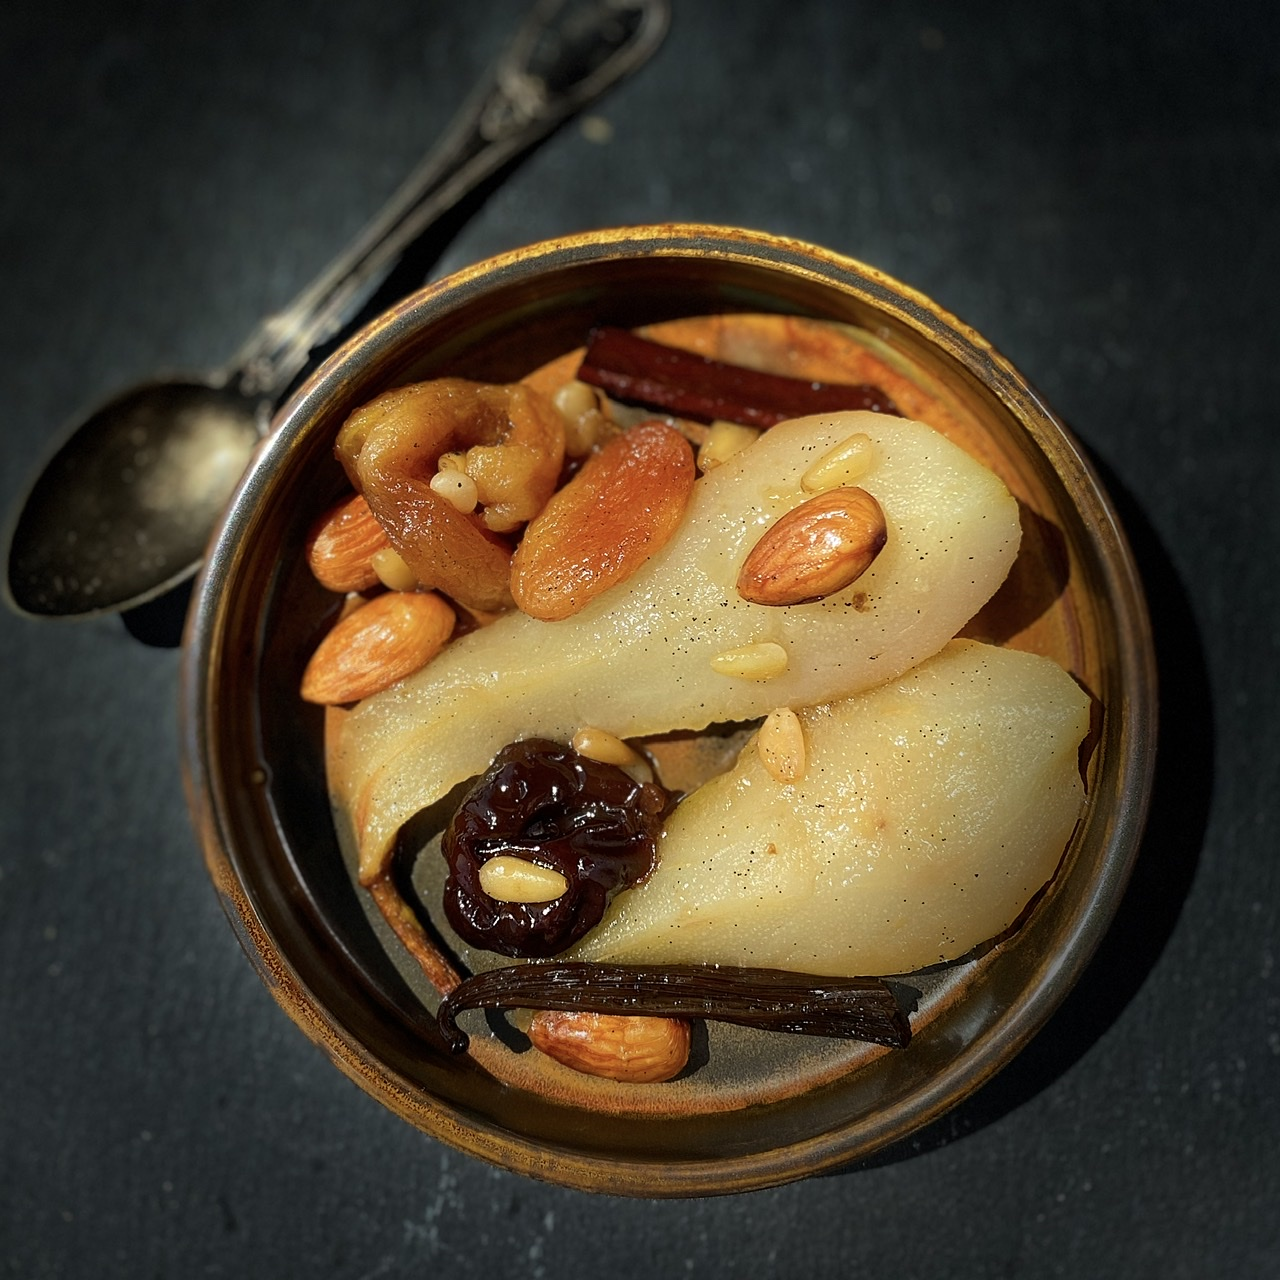 Pears and Dried Fruits in a Tagine